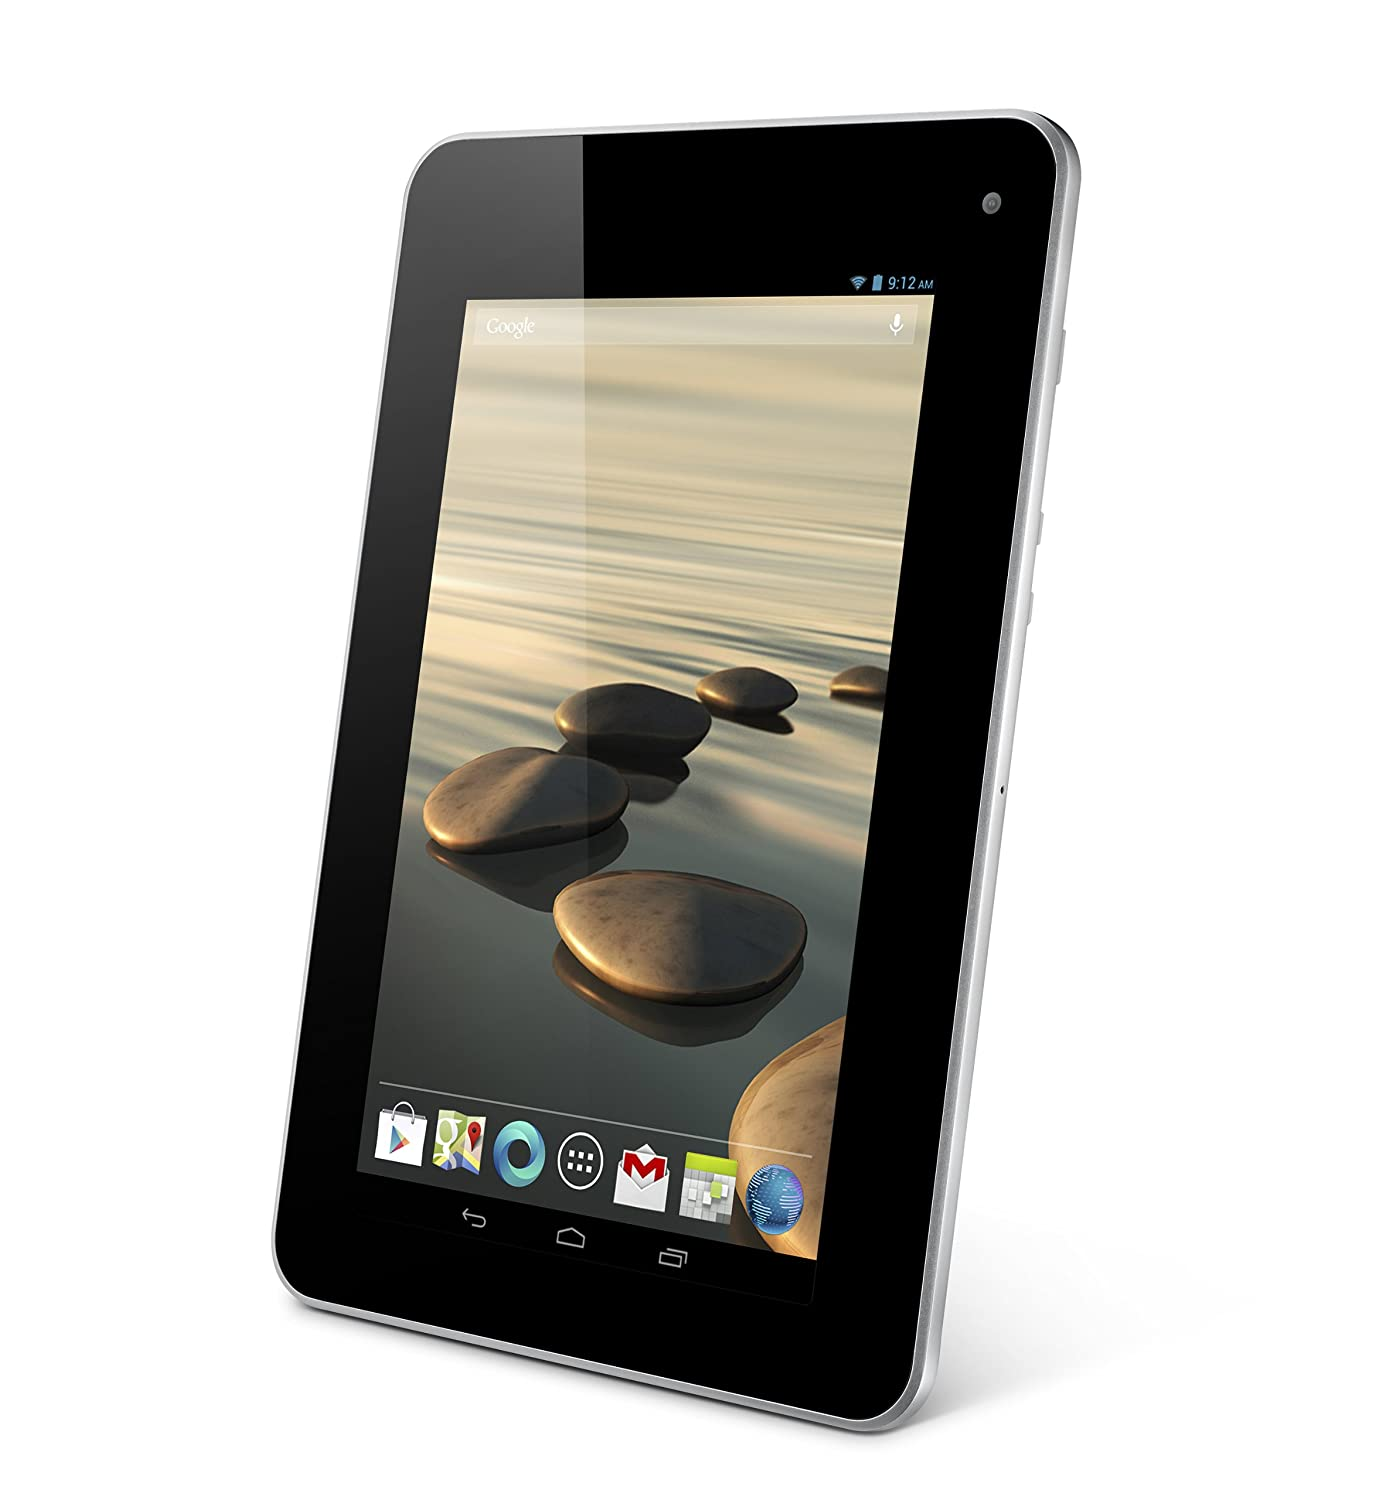 Acer Iconia B1-710 (16-GB) Tablet PC